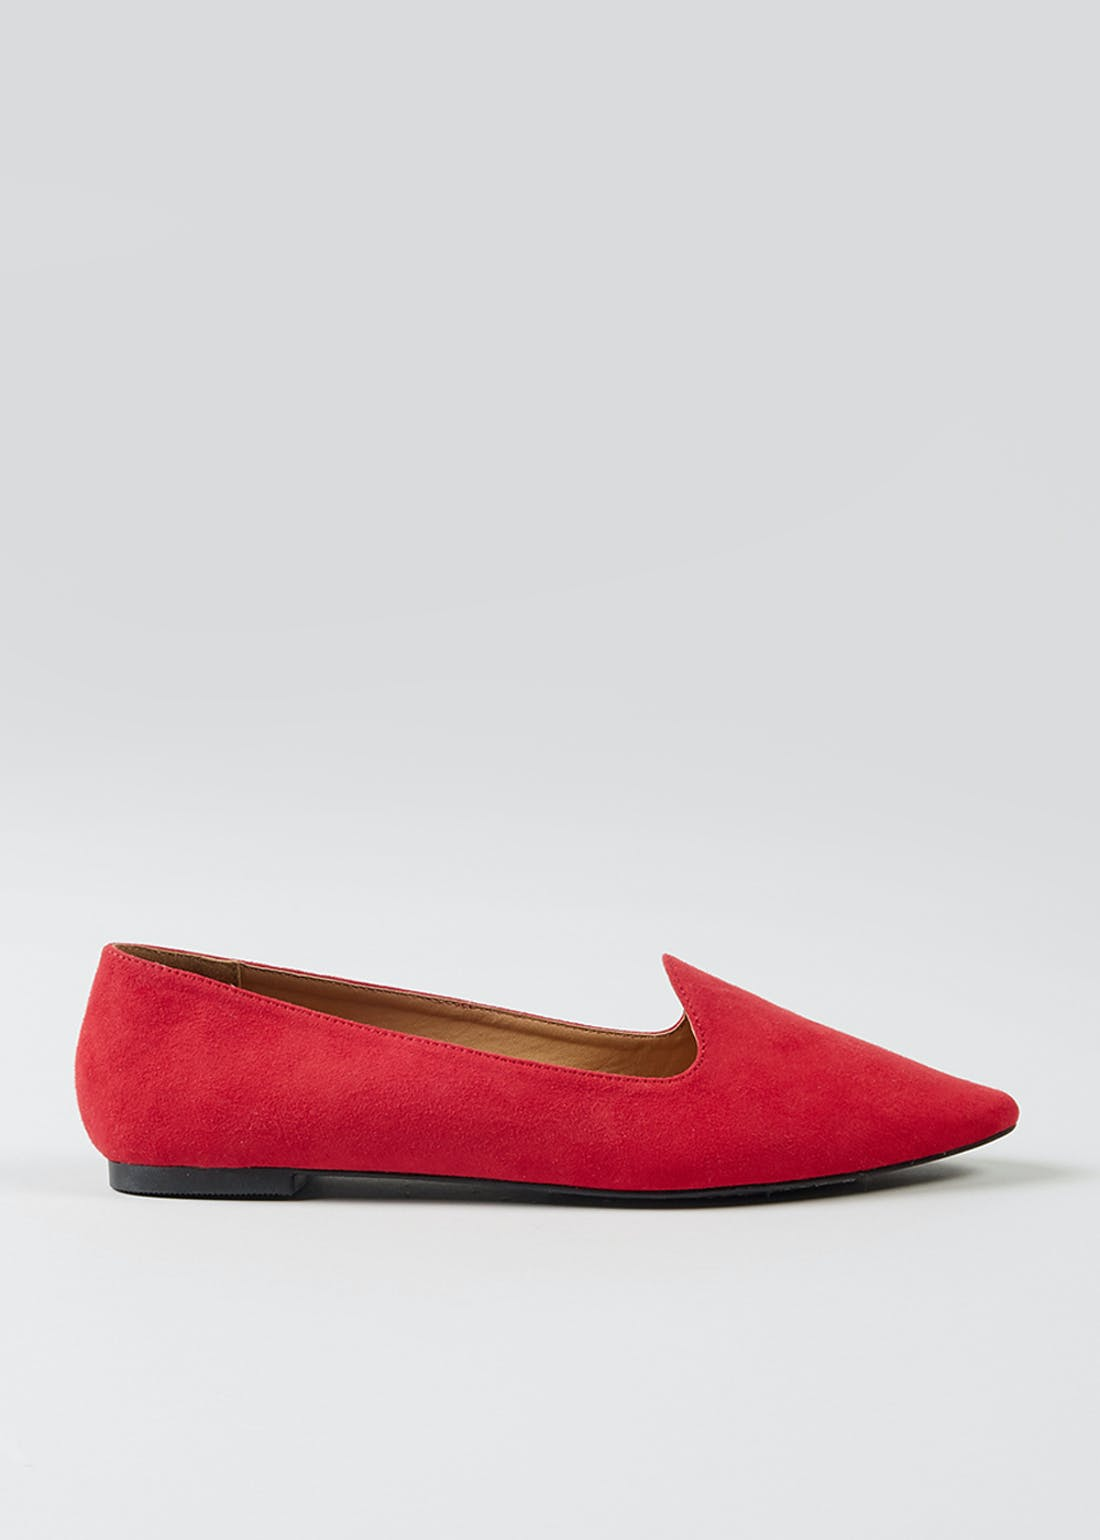 Red Suedette Ballet Slipper Shoes